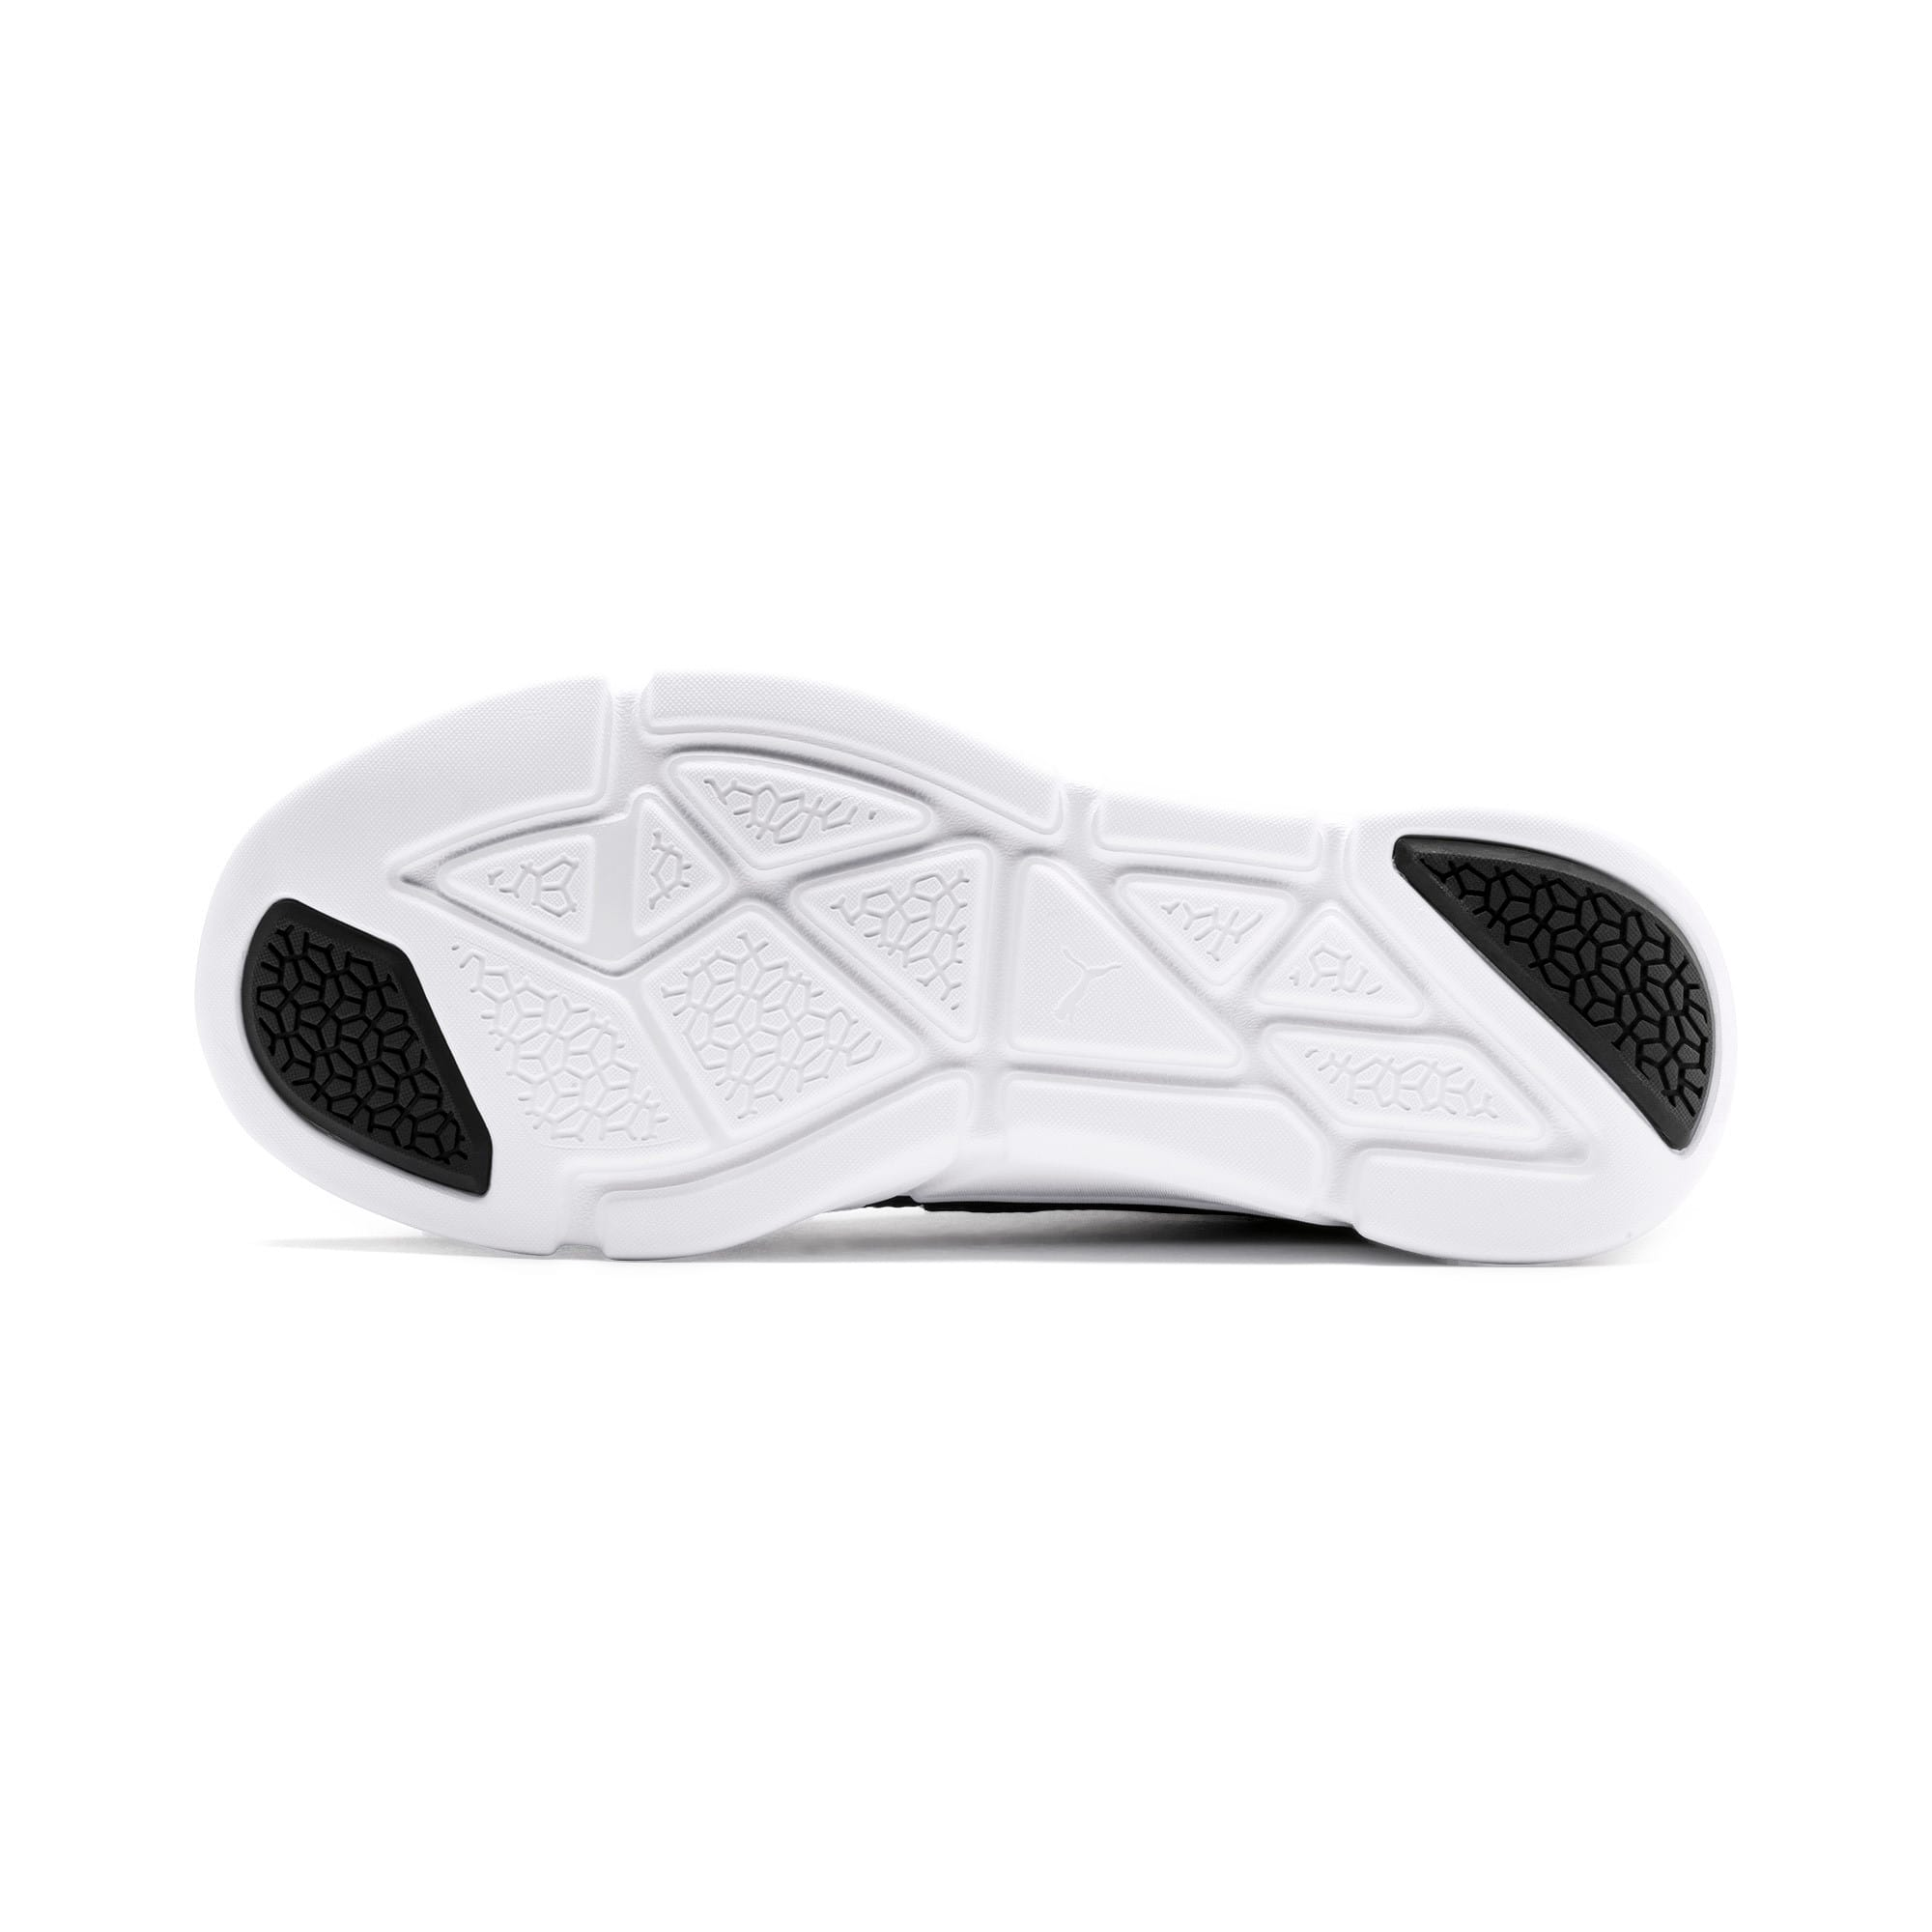 Thumbnail 6 of INTERFLEX Modern Running Shoes, Puma Black-Puma White, medium-IND